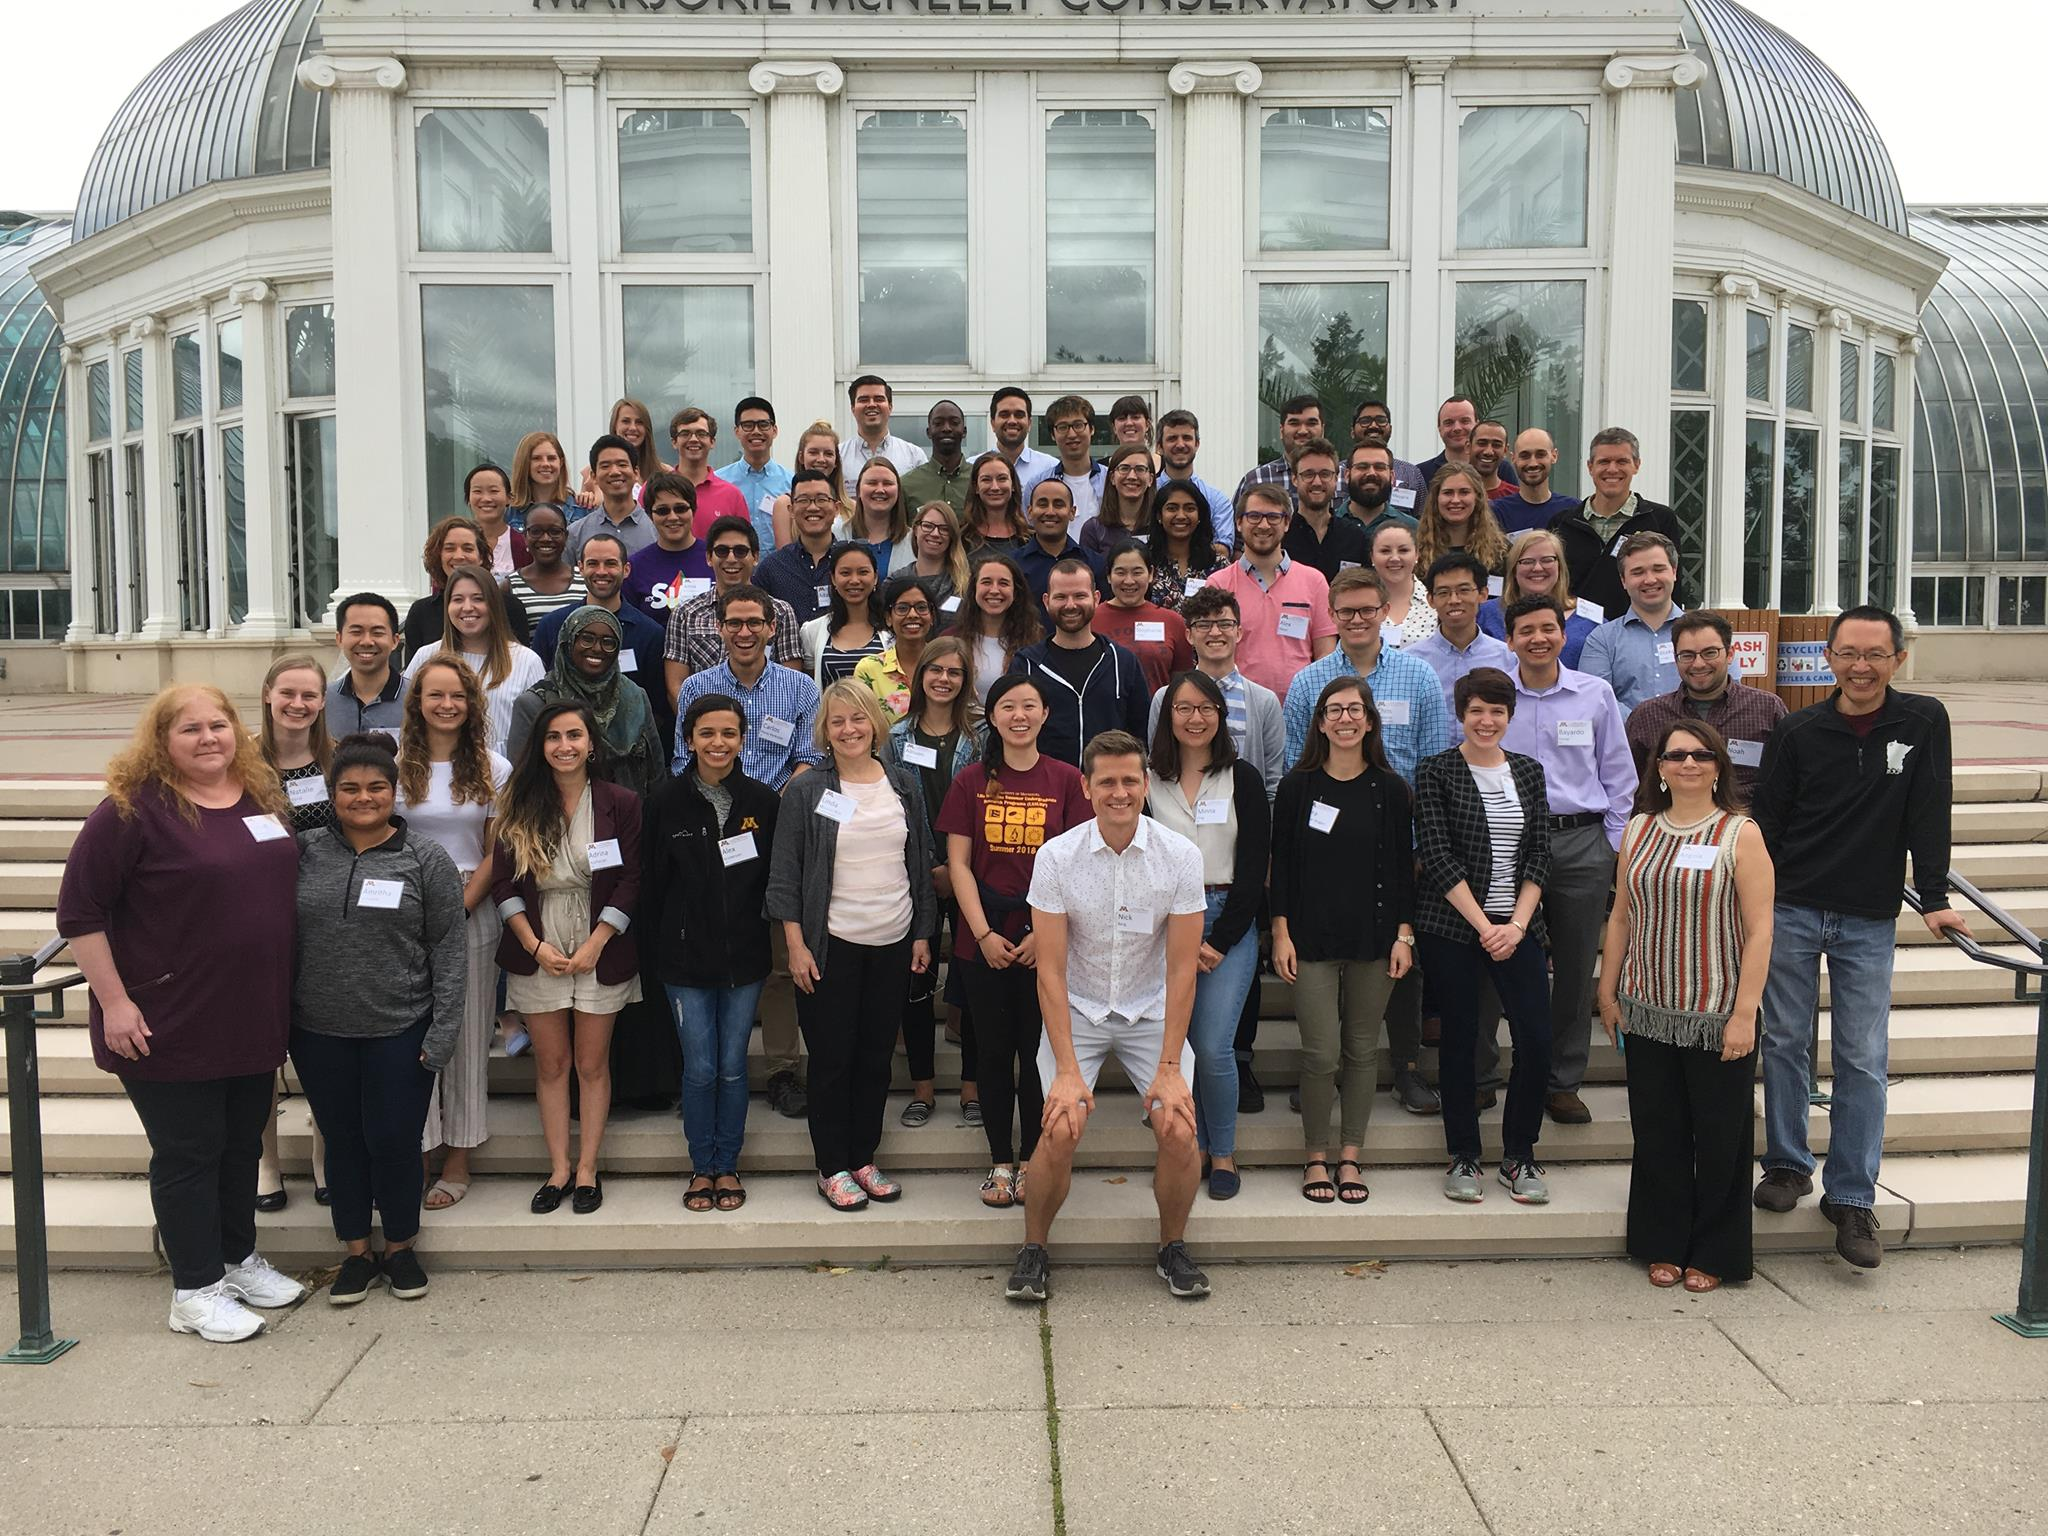 Group picture of UMN Medical Scientist Training Program 2018 retreat attendees